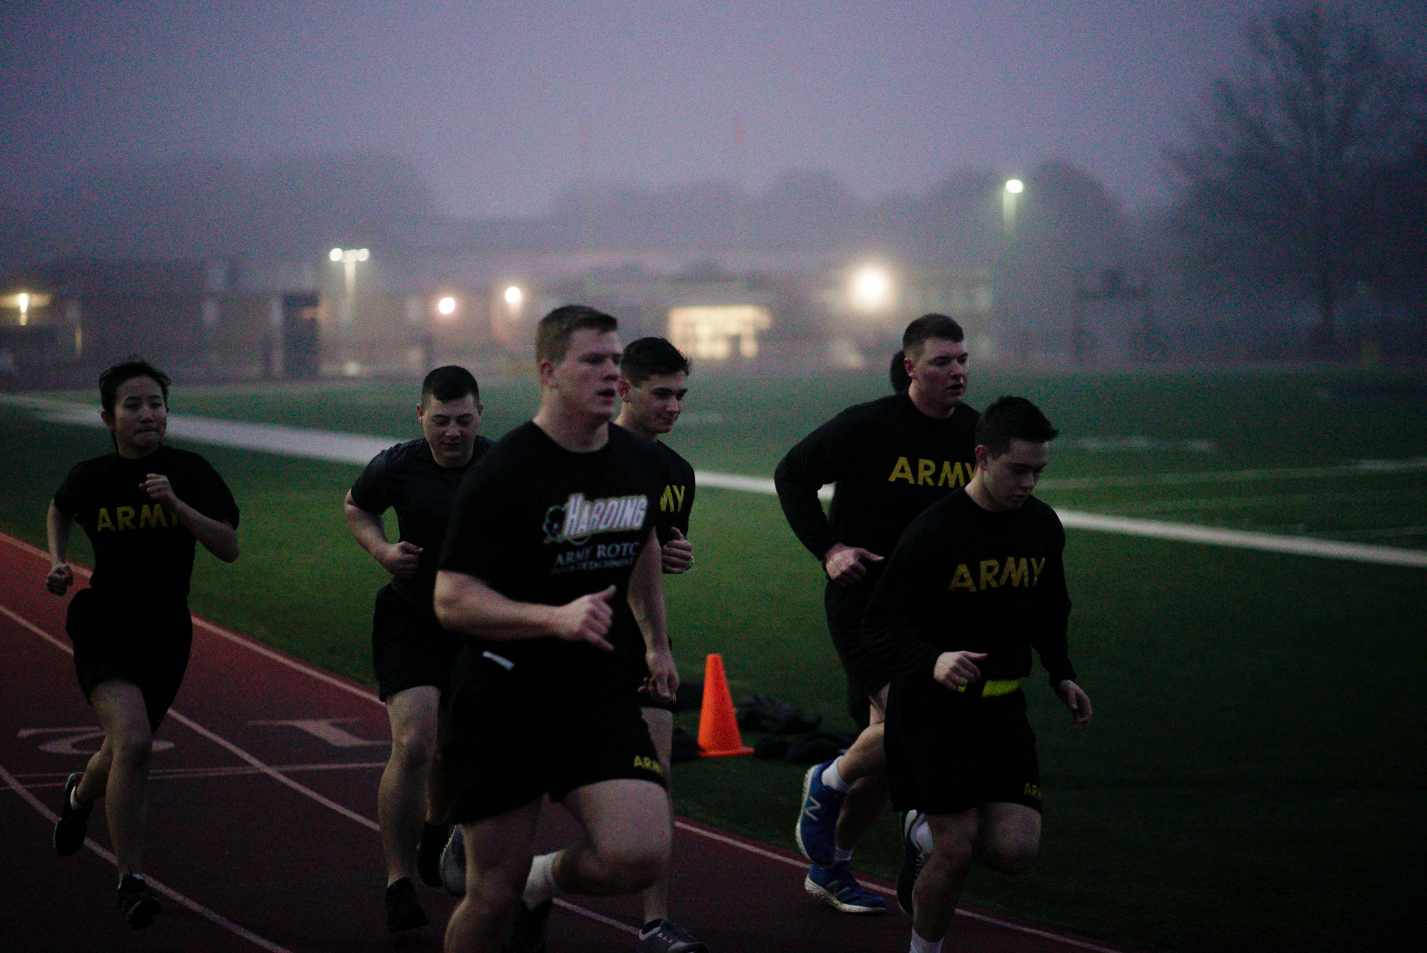 This is a photo of ROTC cadets participating in physical training.